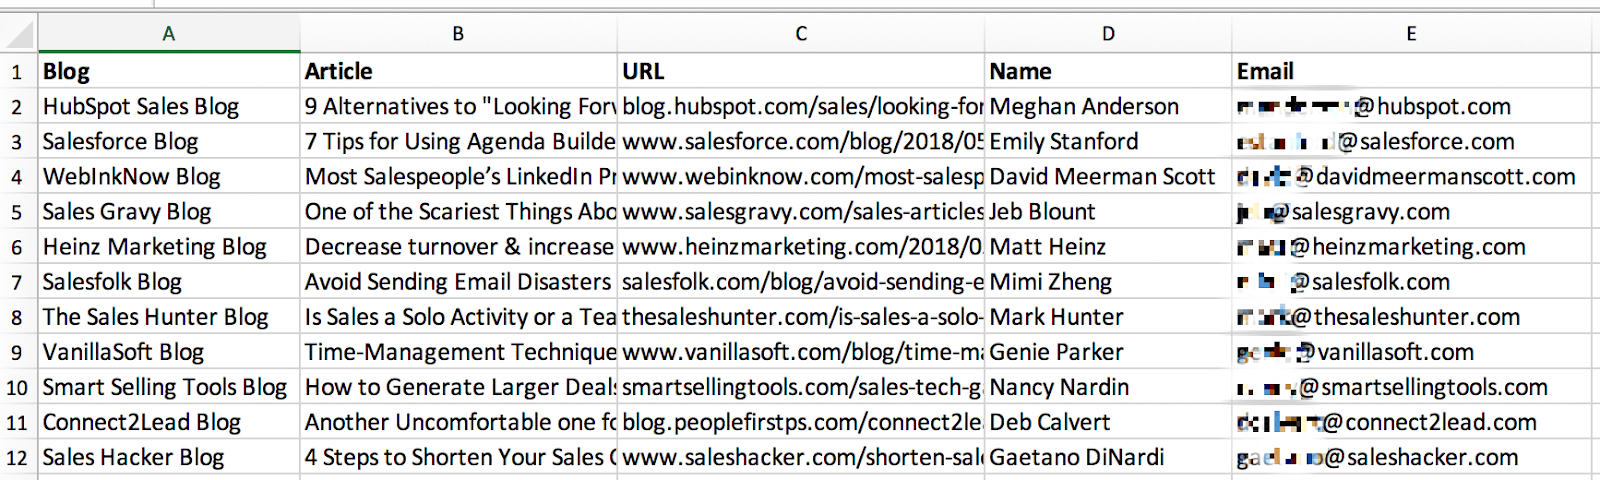 CSV sheet with data